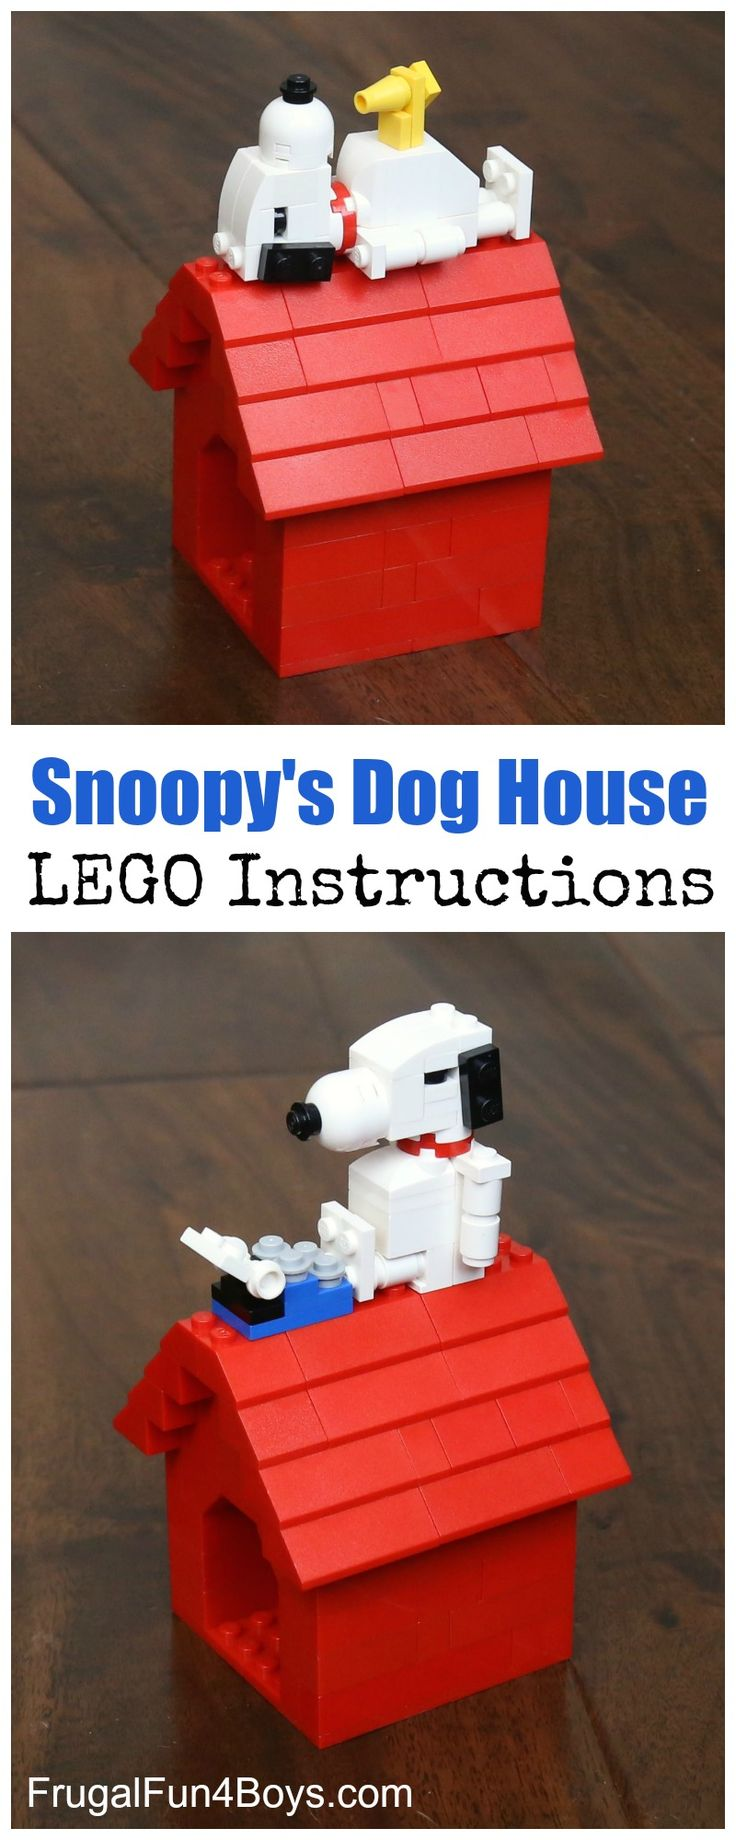 LEGO Building Instructions – Make Snoopy and his doghouse, and there is even a Woodstock too! Oh man, this might be our new favorite LEGO project!  The boys have been arguing over who gets to display it in their room, so I solved that conflict by saying that it's mine. 🙂 Gresham and I were...Read More »